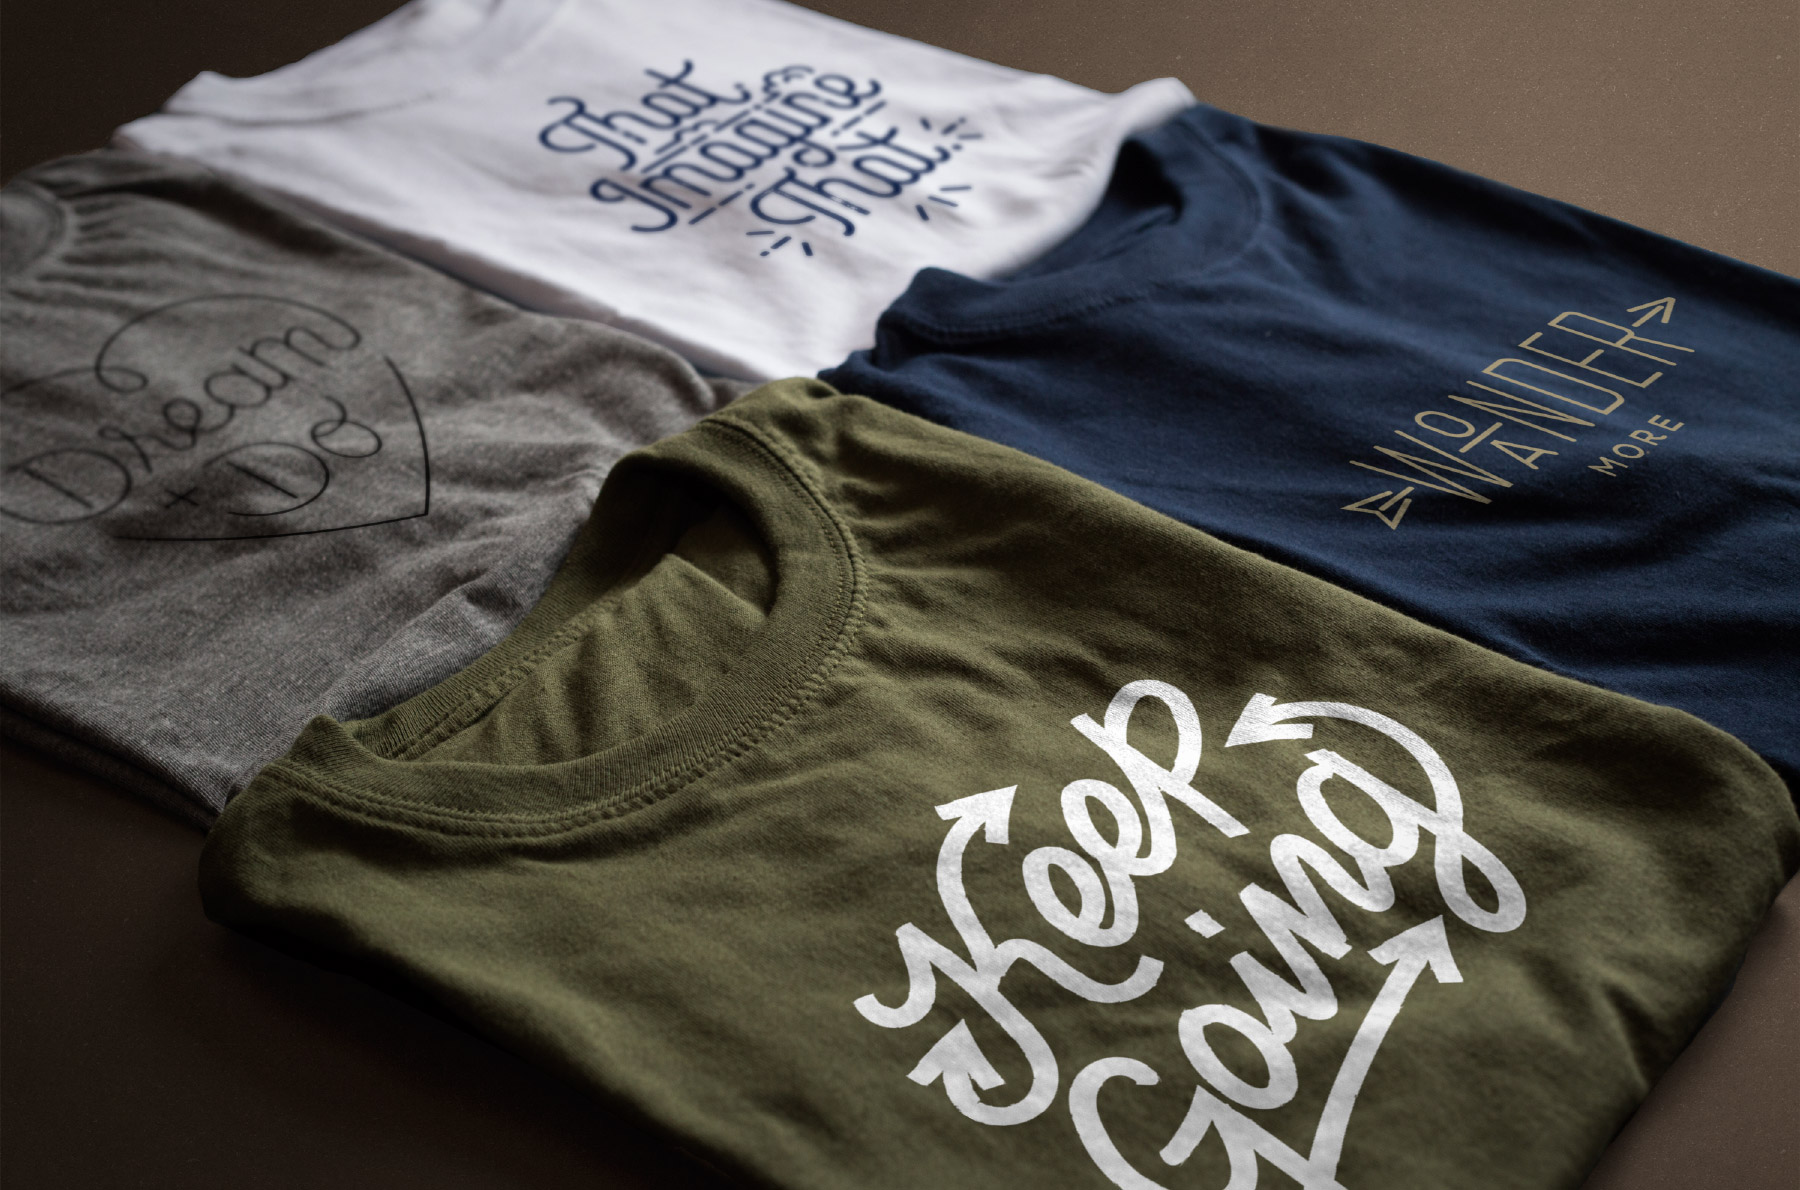 Graphic t-shirts with inspirational messages